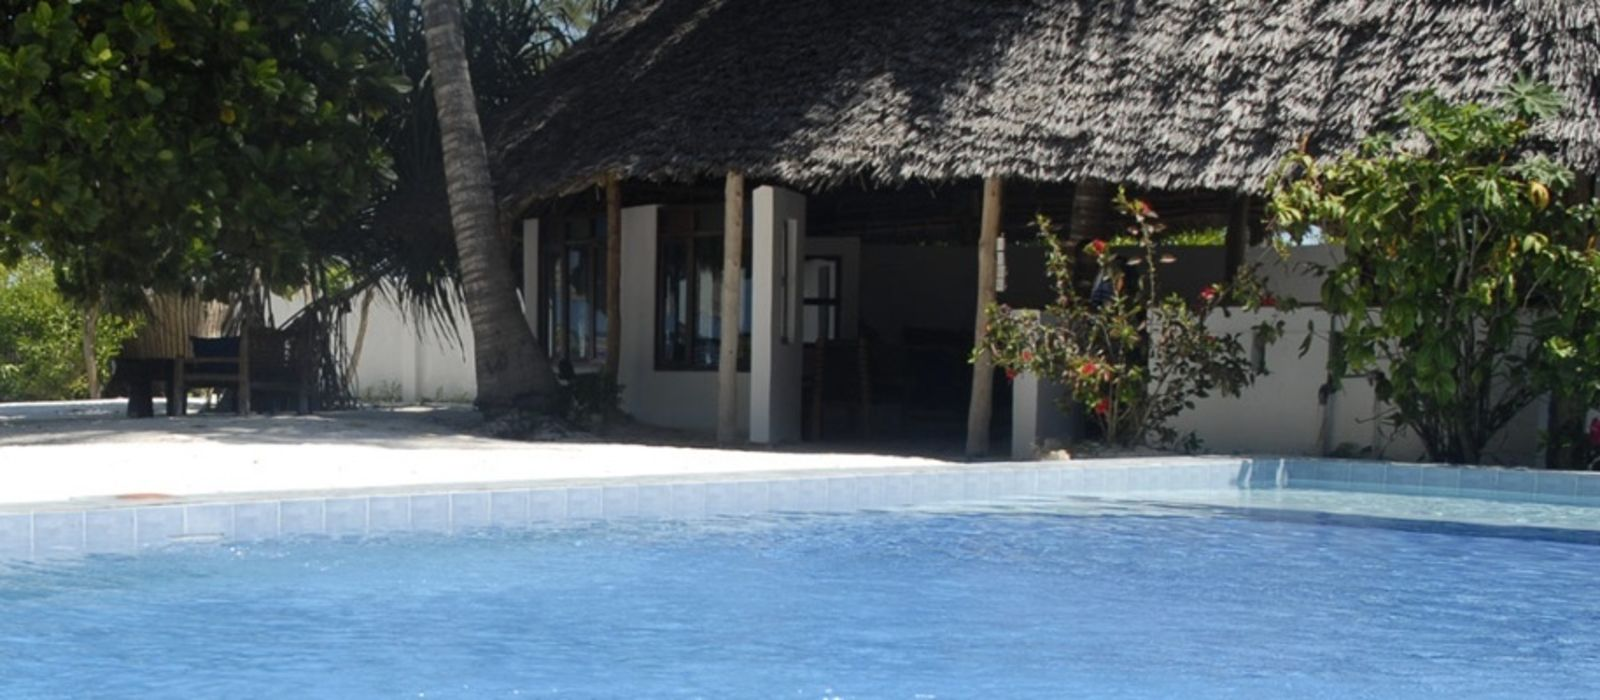 Matemwe Beach Resort